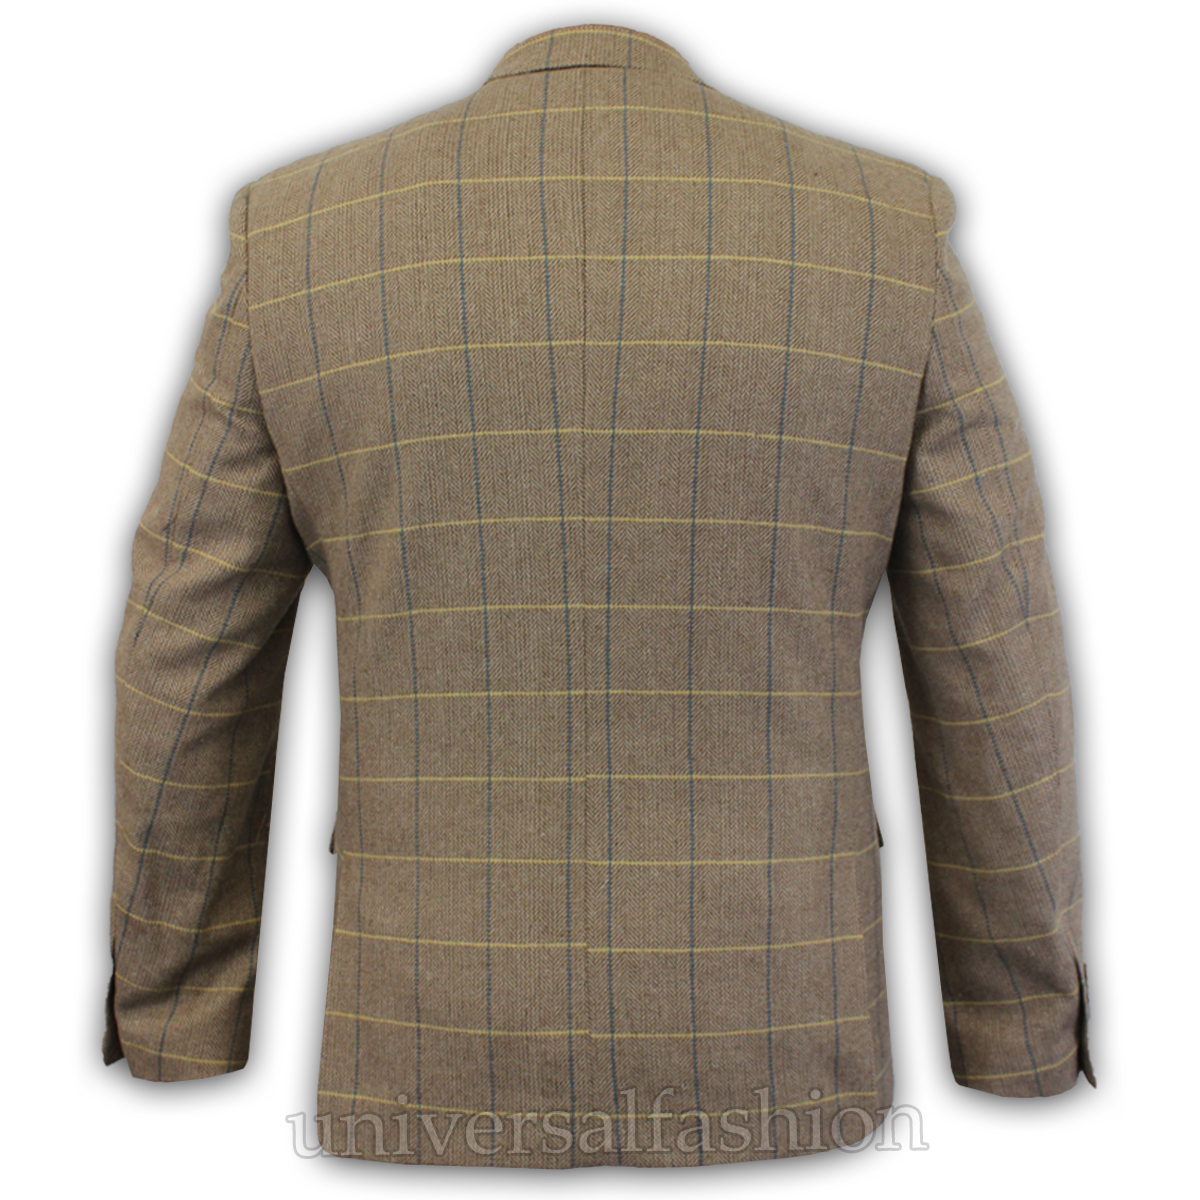 Mens-Blazer-Marc-Darcy-Wool-Look-Coat-Formal-Dinner-Check-Jacket-Patch-Lined-New thumbnail 6